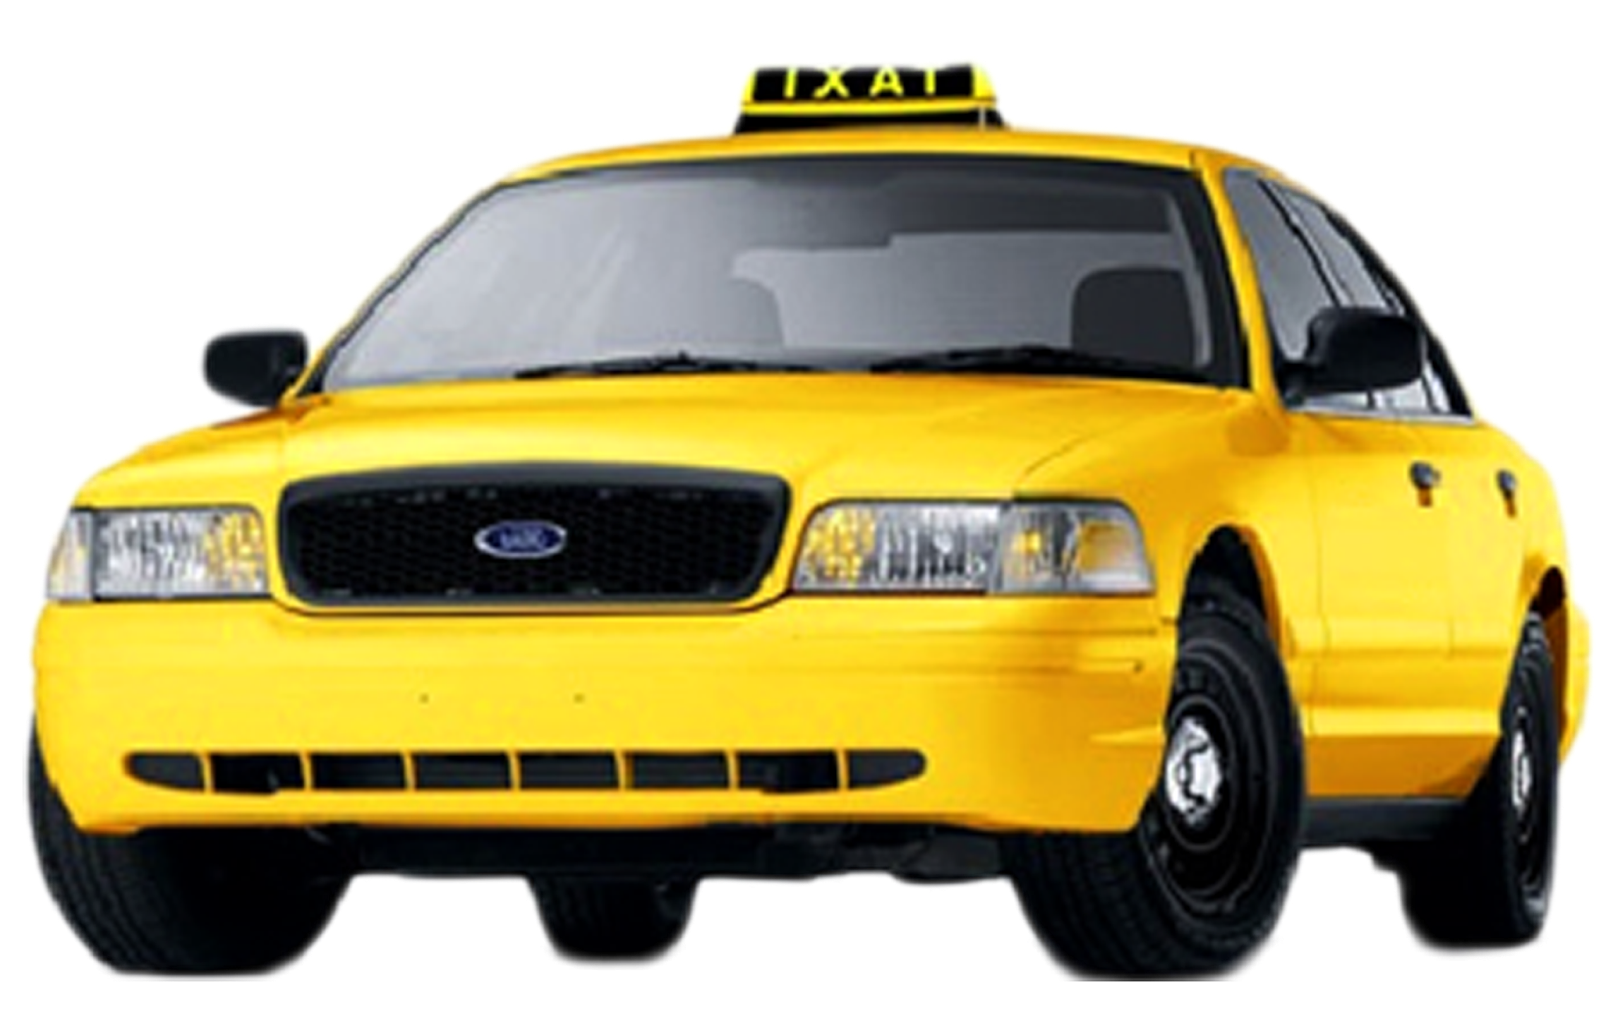 Download Taxi Cab High Quality PNG.